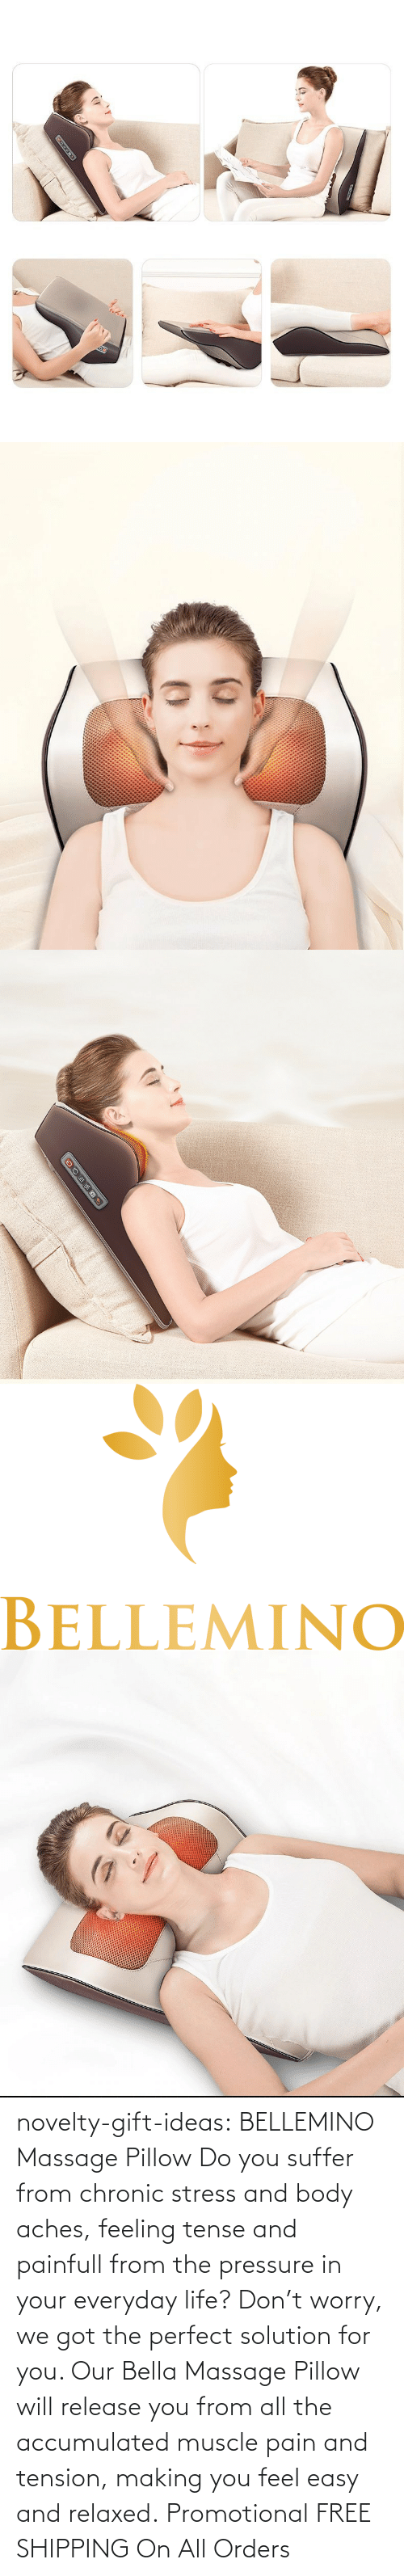 Pressure: novelty-gift-ideas:   BELLEMINO Massage Pillow     Do you suffer from chronic stress and body aches, feeling tense and painfull from the pressure in your everyday life? Don't worry, we got the perfect solution for you. Our Bella Massage Pillow will release you from all the accumulated muscle pain and tension, making you feel easy and relaxed.     Promotional FREE SHIPPING On All Orders